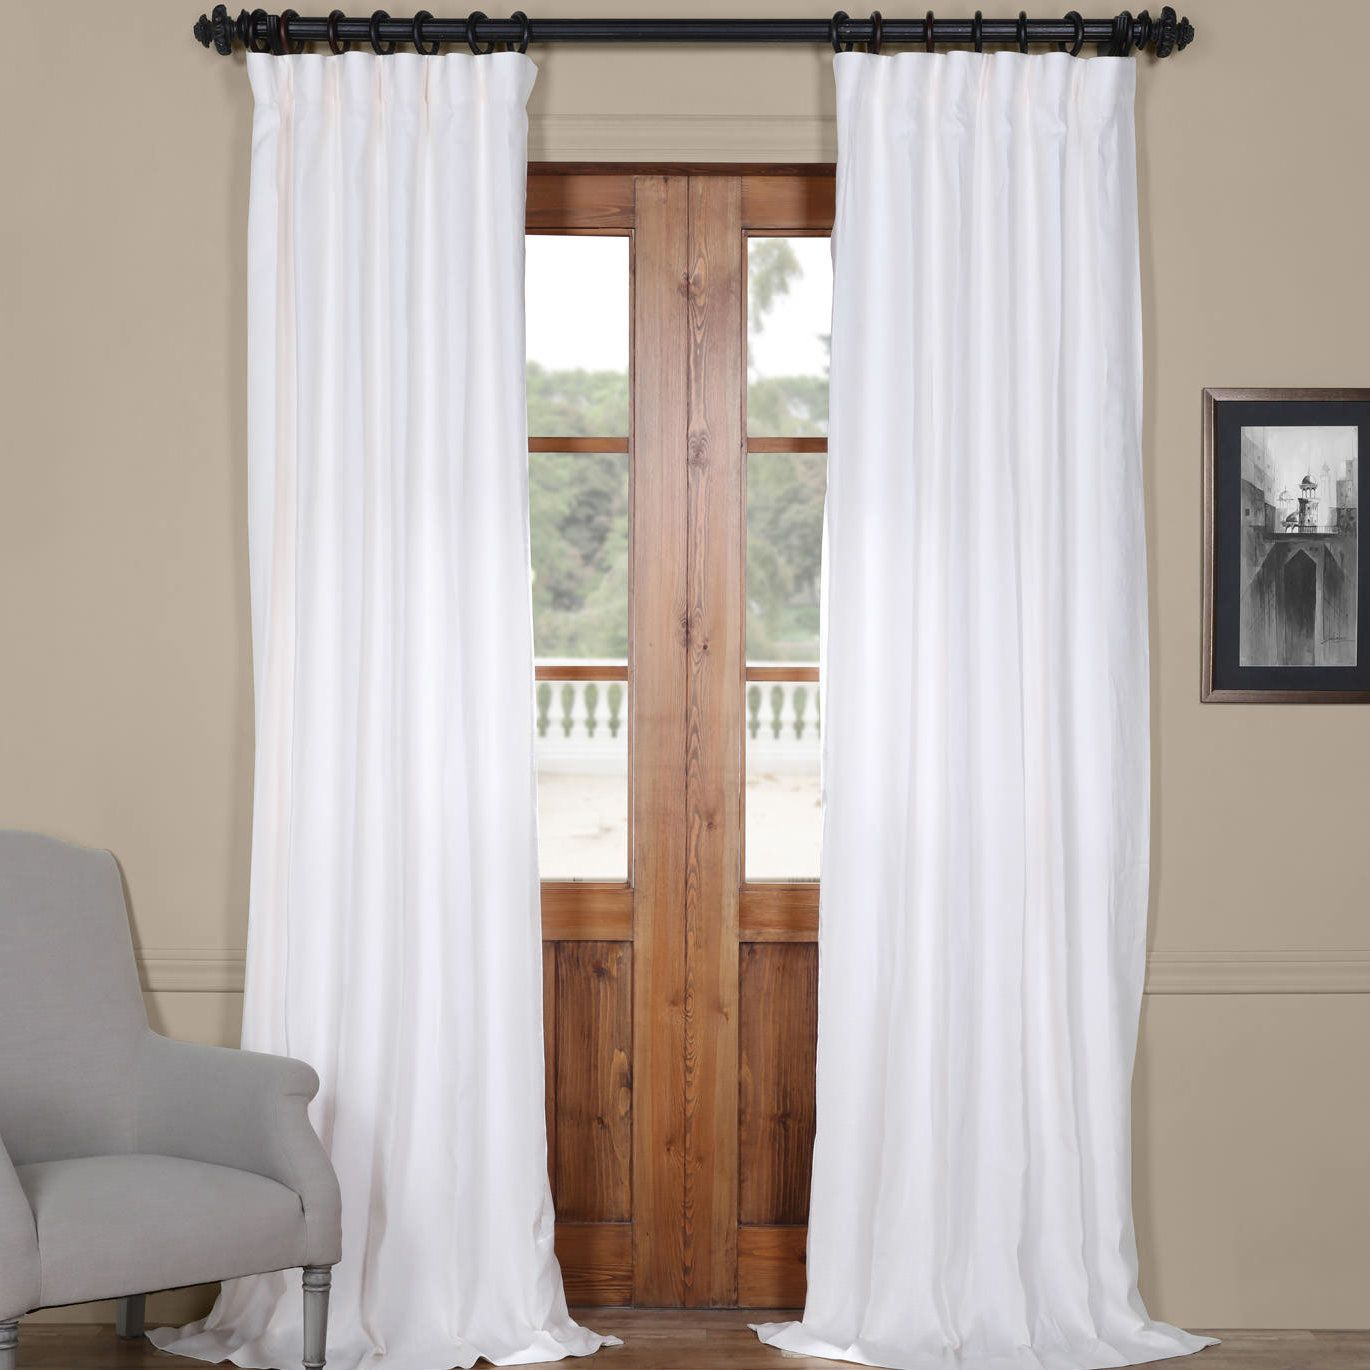 Ennis Linen Rod Pocket Single Curtain Panel | Designed In Regarding Signature White Double Layer Sheer Curtain Panels (View 4 of 30)